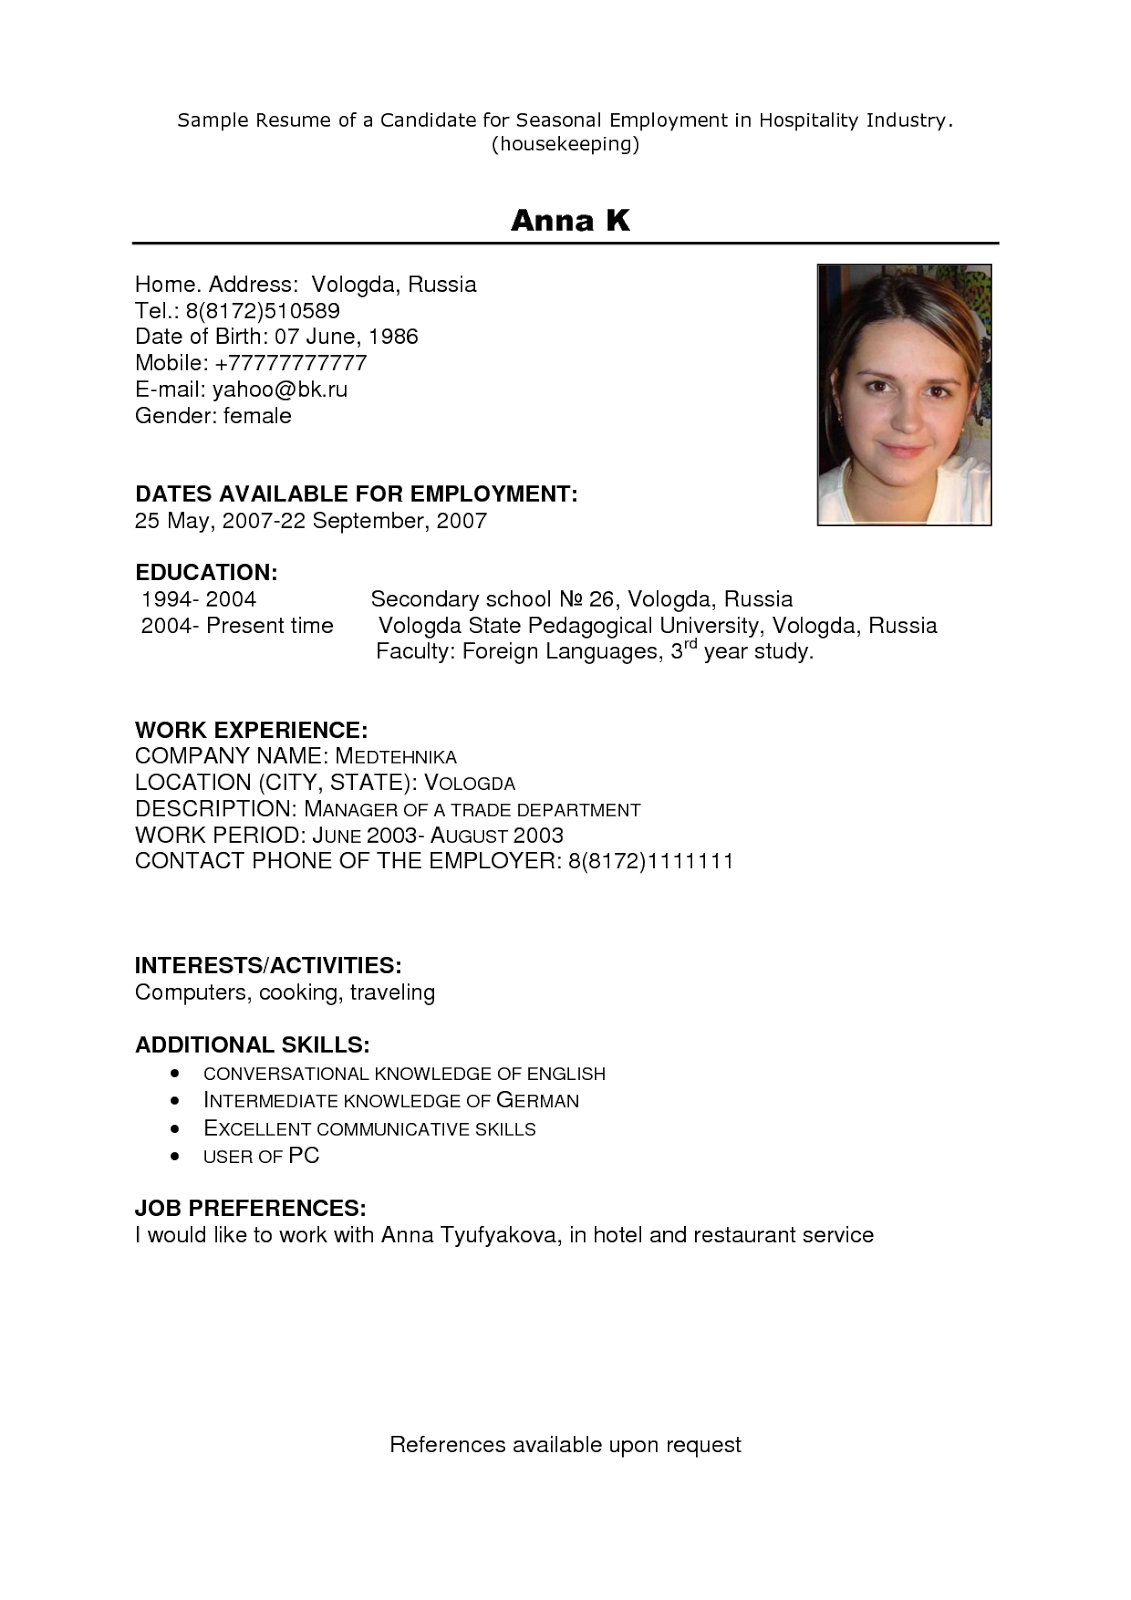 free resume maker reviews examples of resumes cv layout 2014 maker